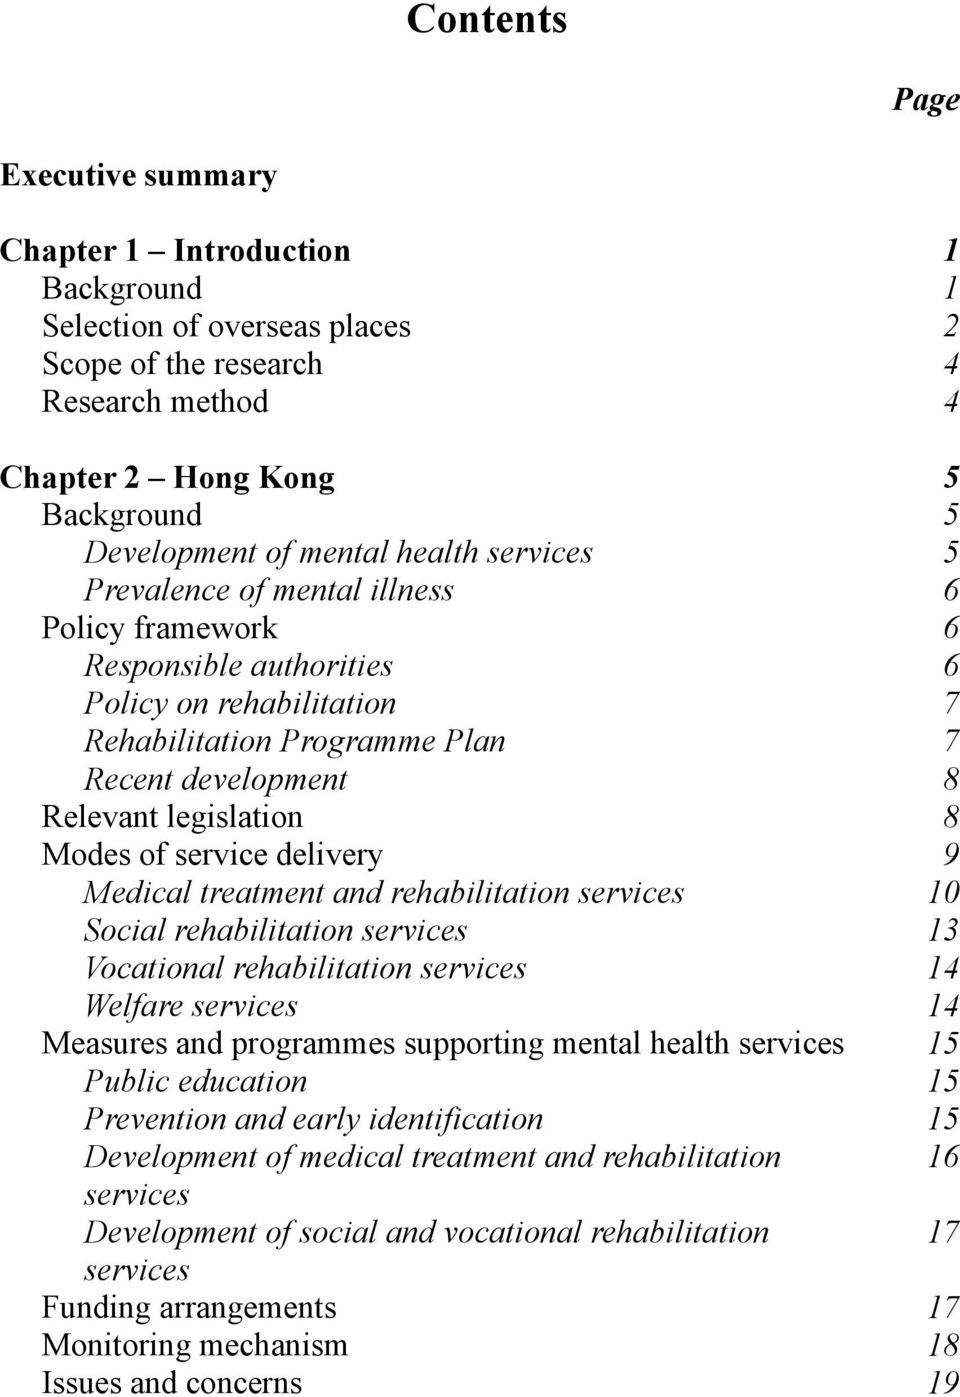 Modes of service delivery 9 Medical treatment and rehabilitation services 10 Social rehabilitation services 13 Vocational rehabilitation services 14 Welfare services 14 Measures and programmes